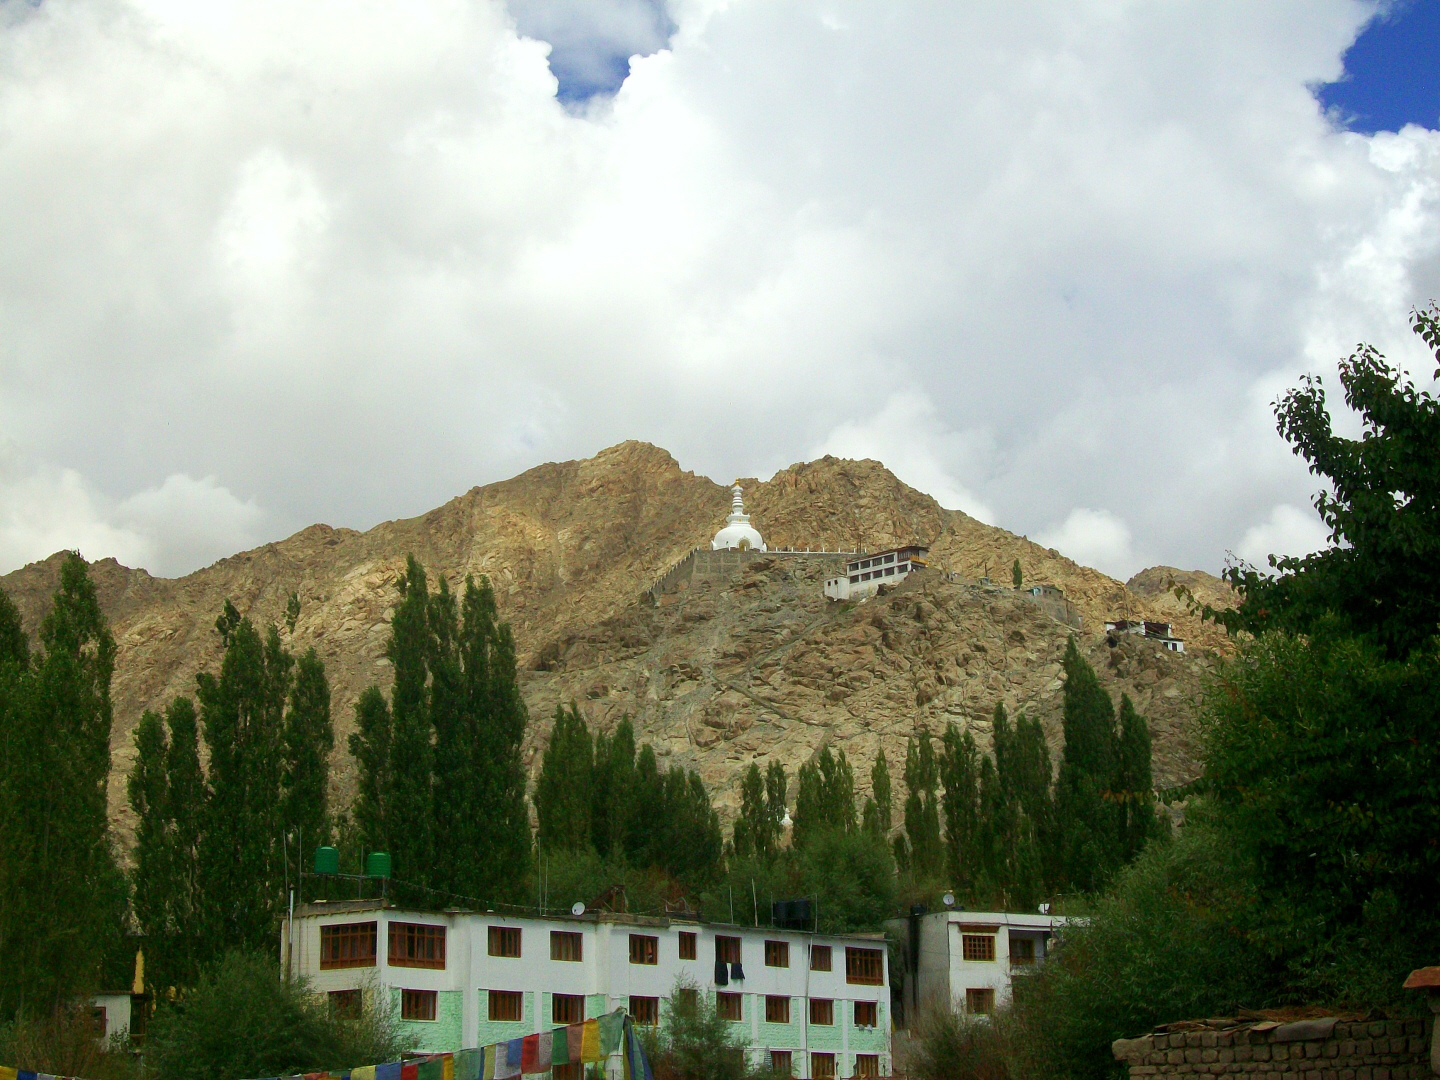 Stupa Gompa (Monastery) on Mountain - a hotel below - Leh, Ladakh- India